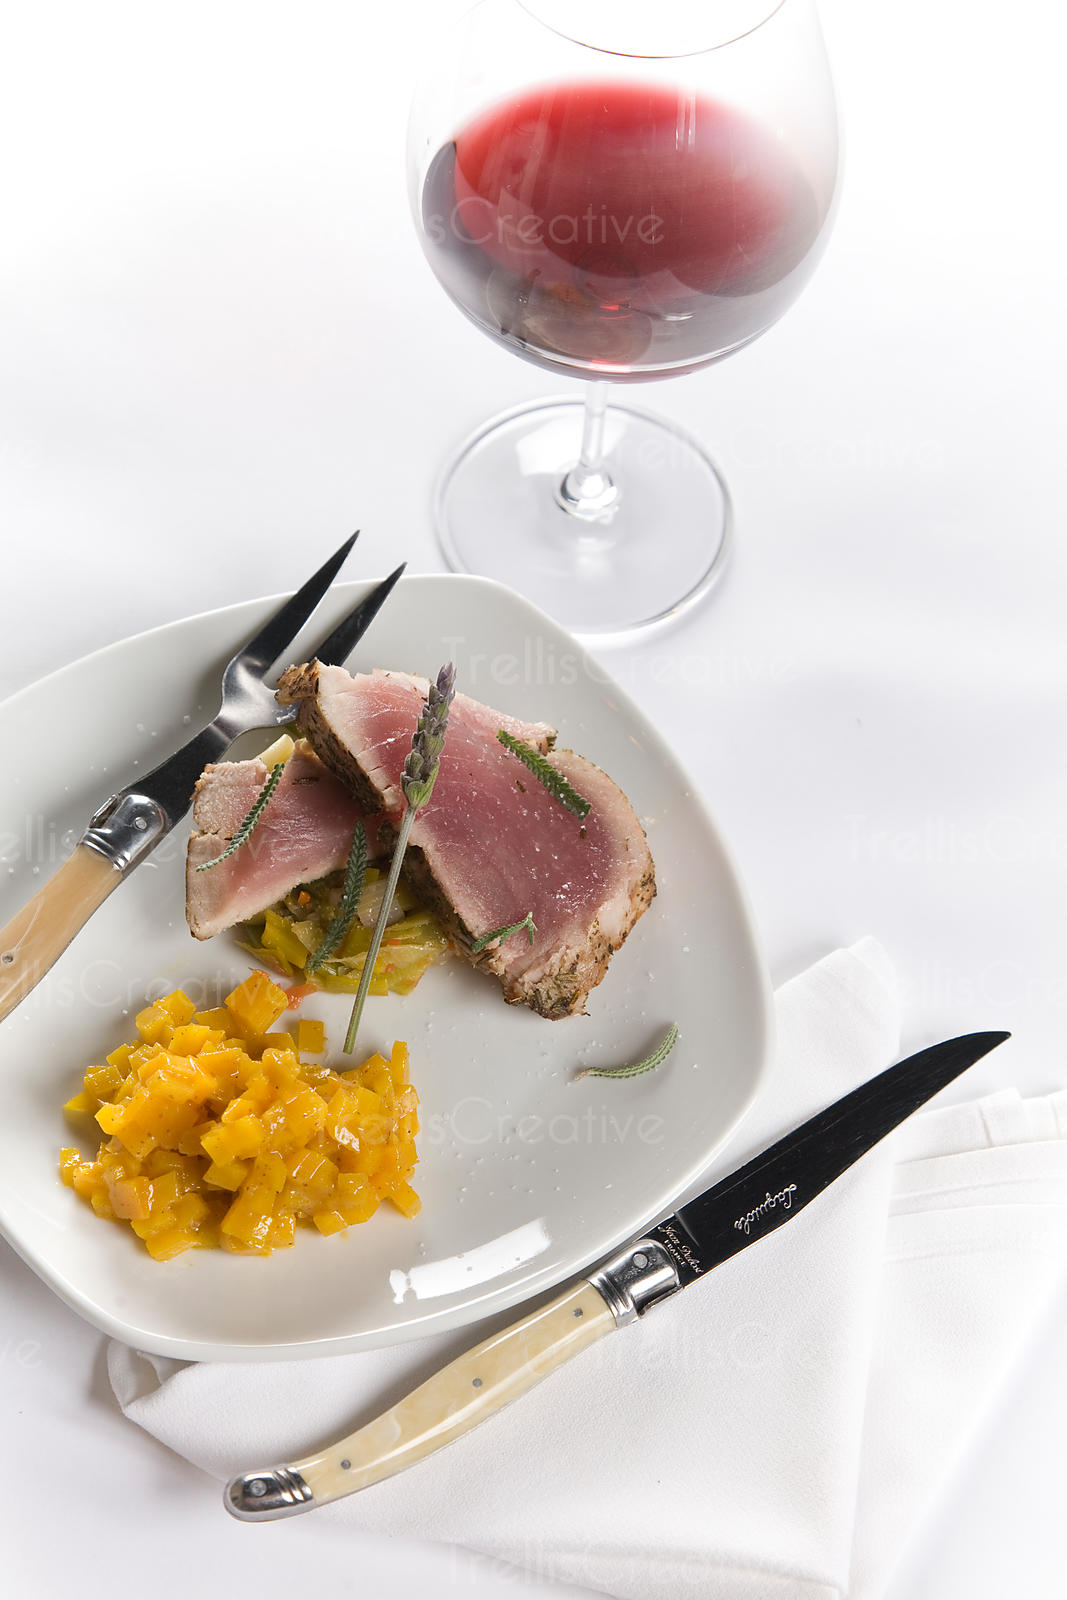 Rare tuna steak served with roasted golden yellow beets and glass of red wine